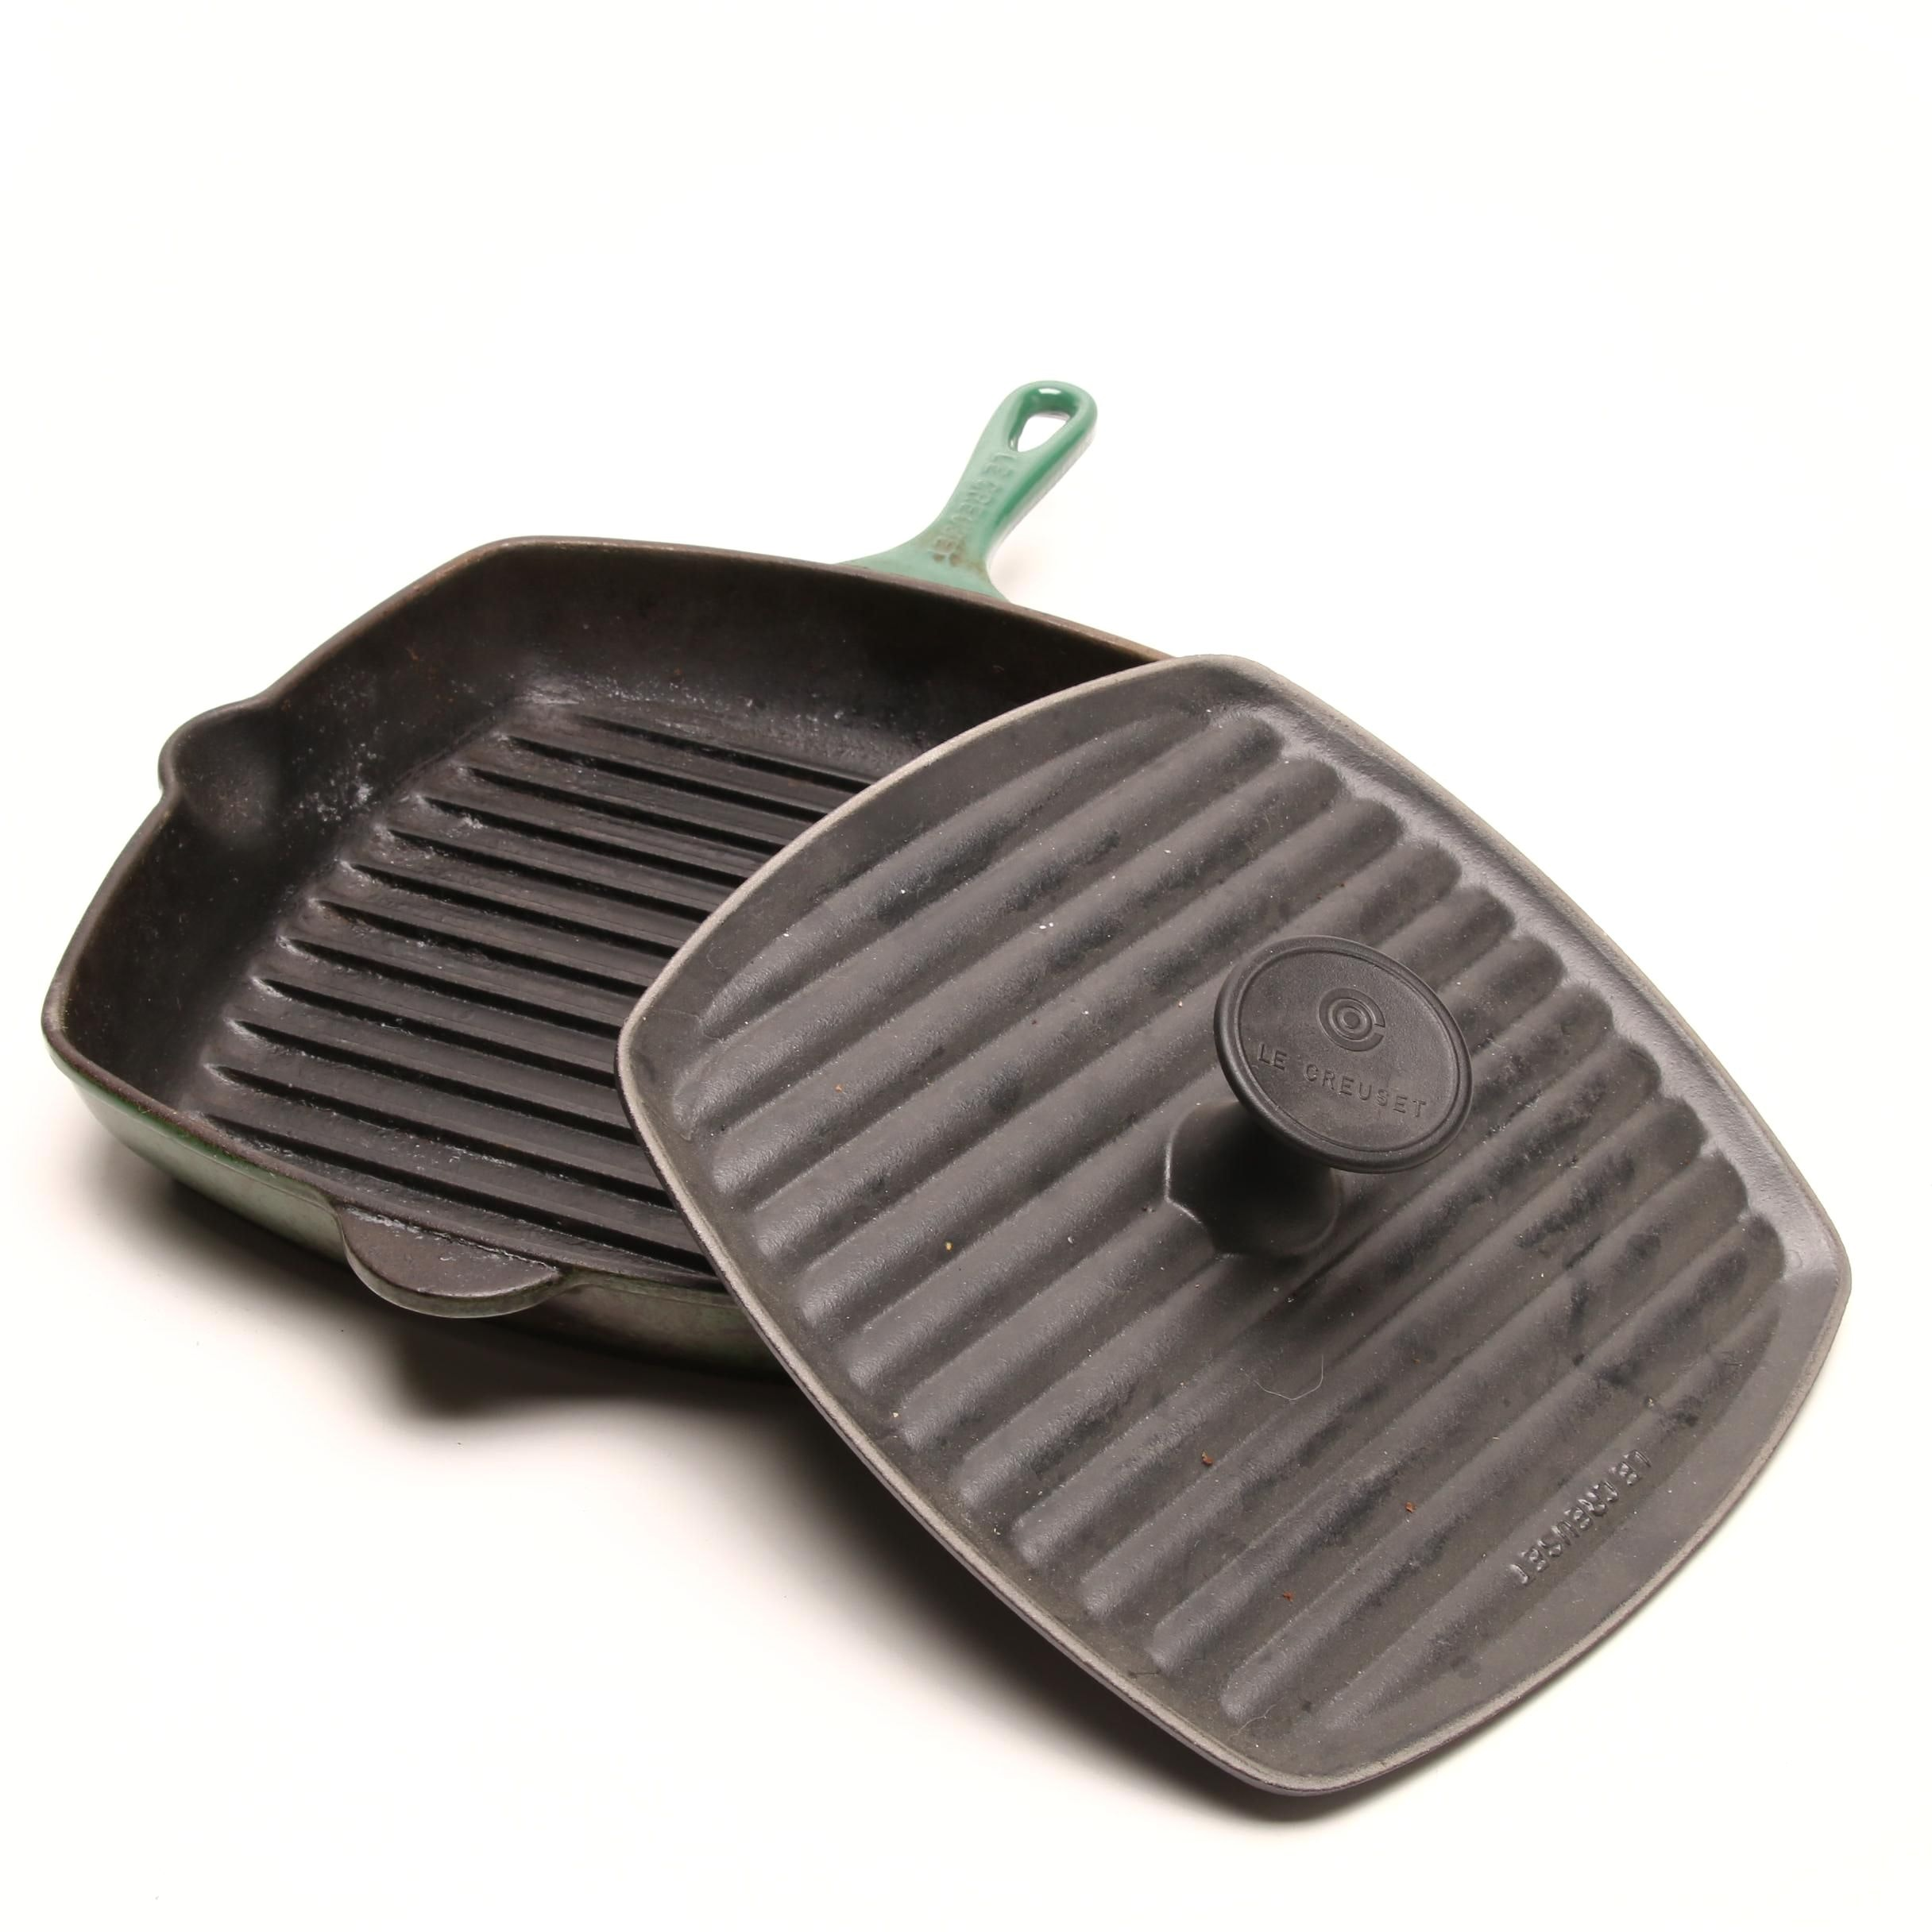 Le Creuset Cast Iron Square Grill Pan and Press